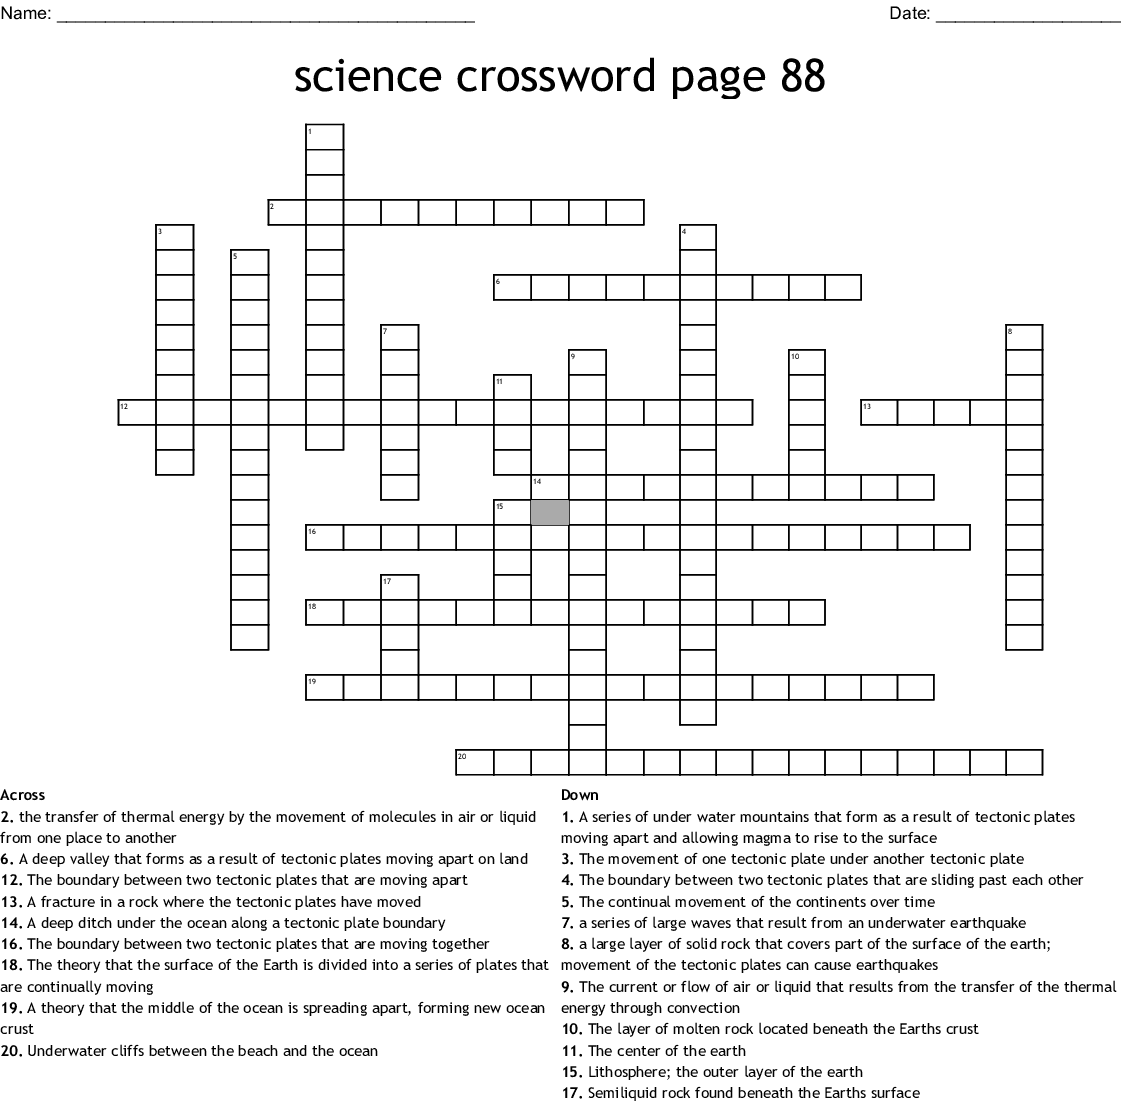 Science Crossword Page 88